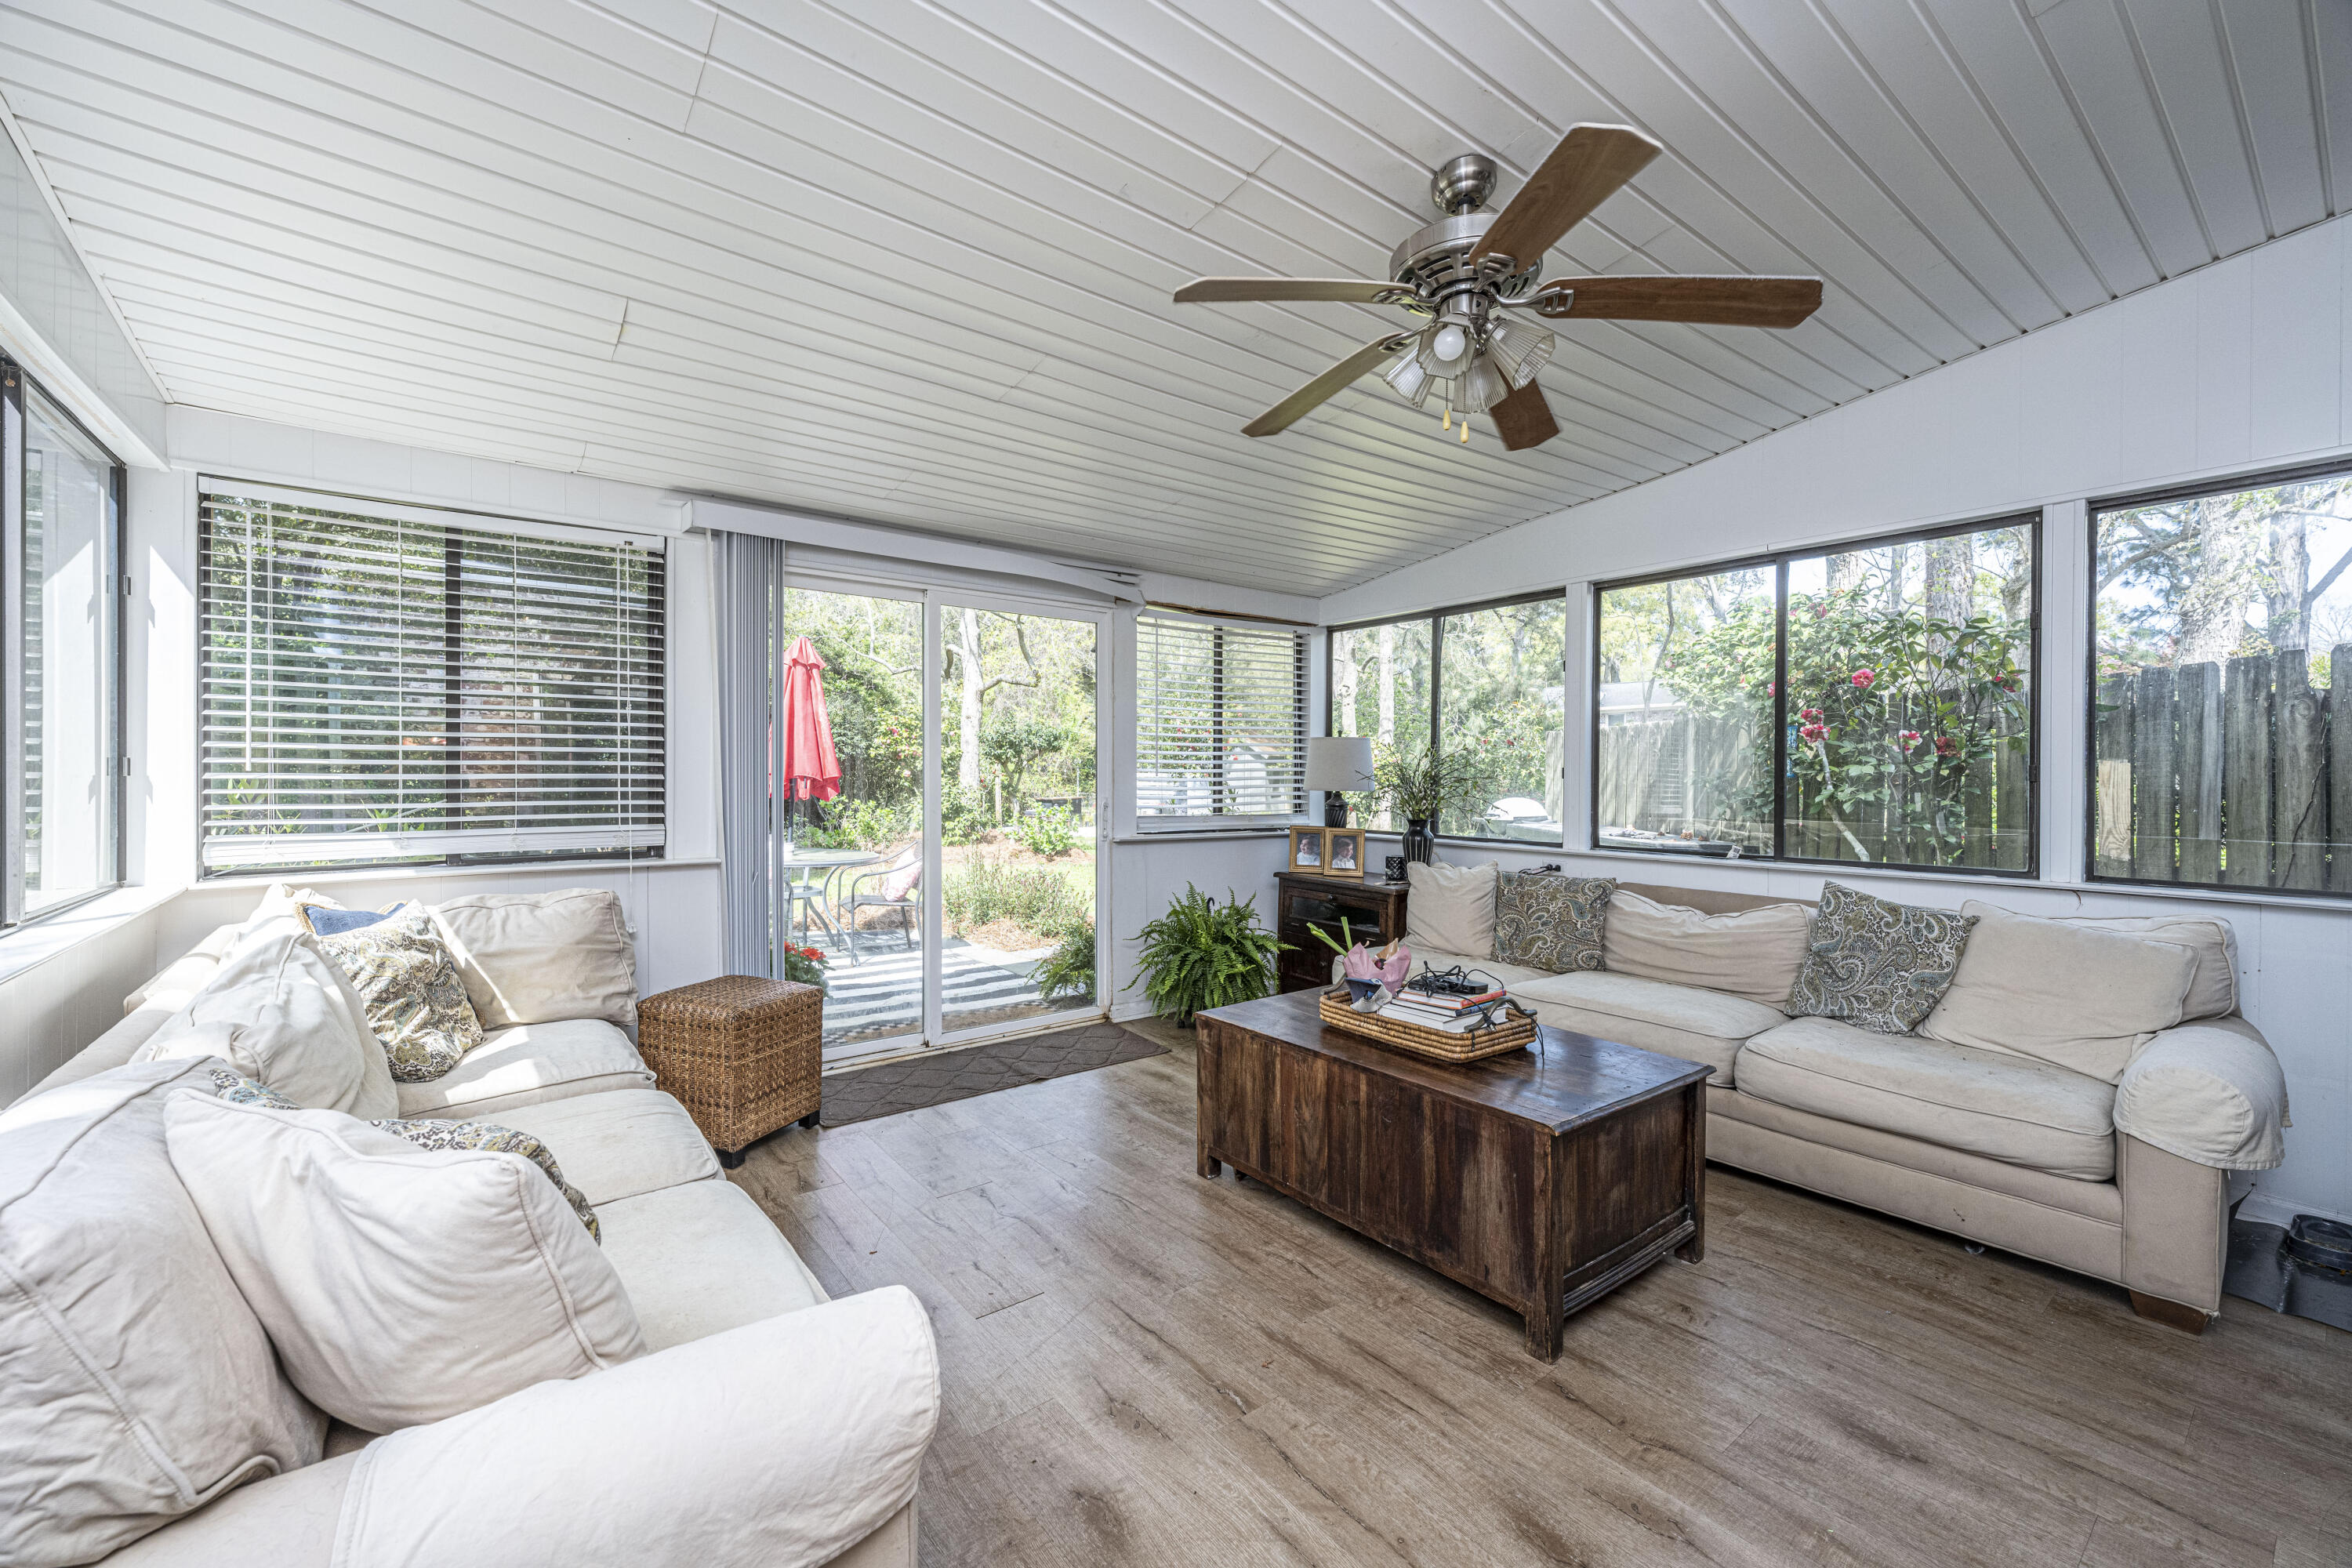 Stiles Point Homes For Sale - 775 Sparrow, Charleston, SC - 22